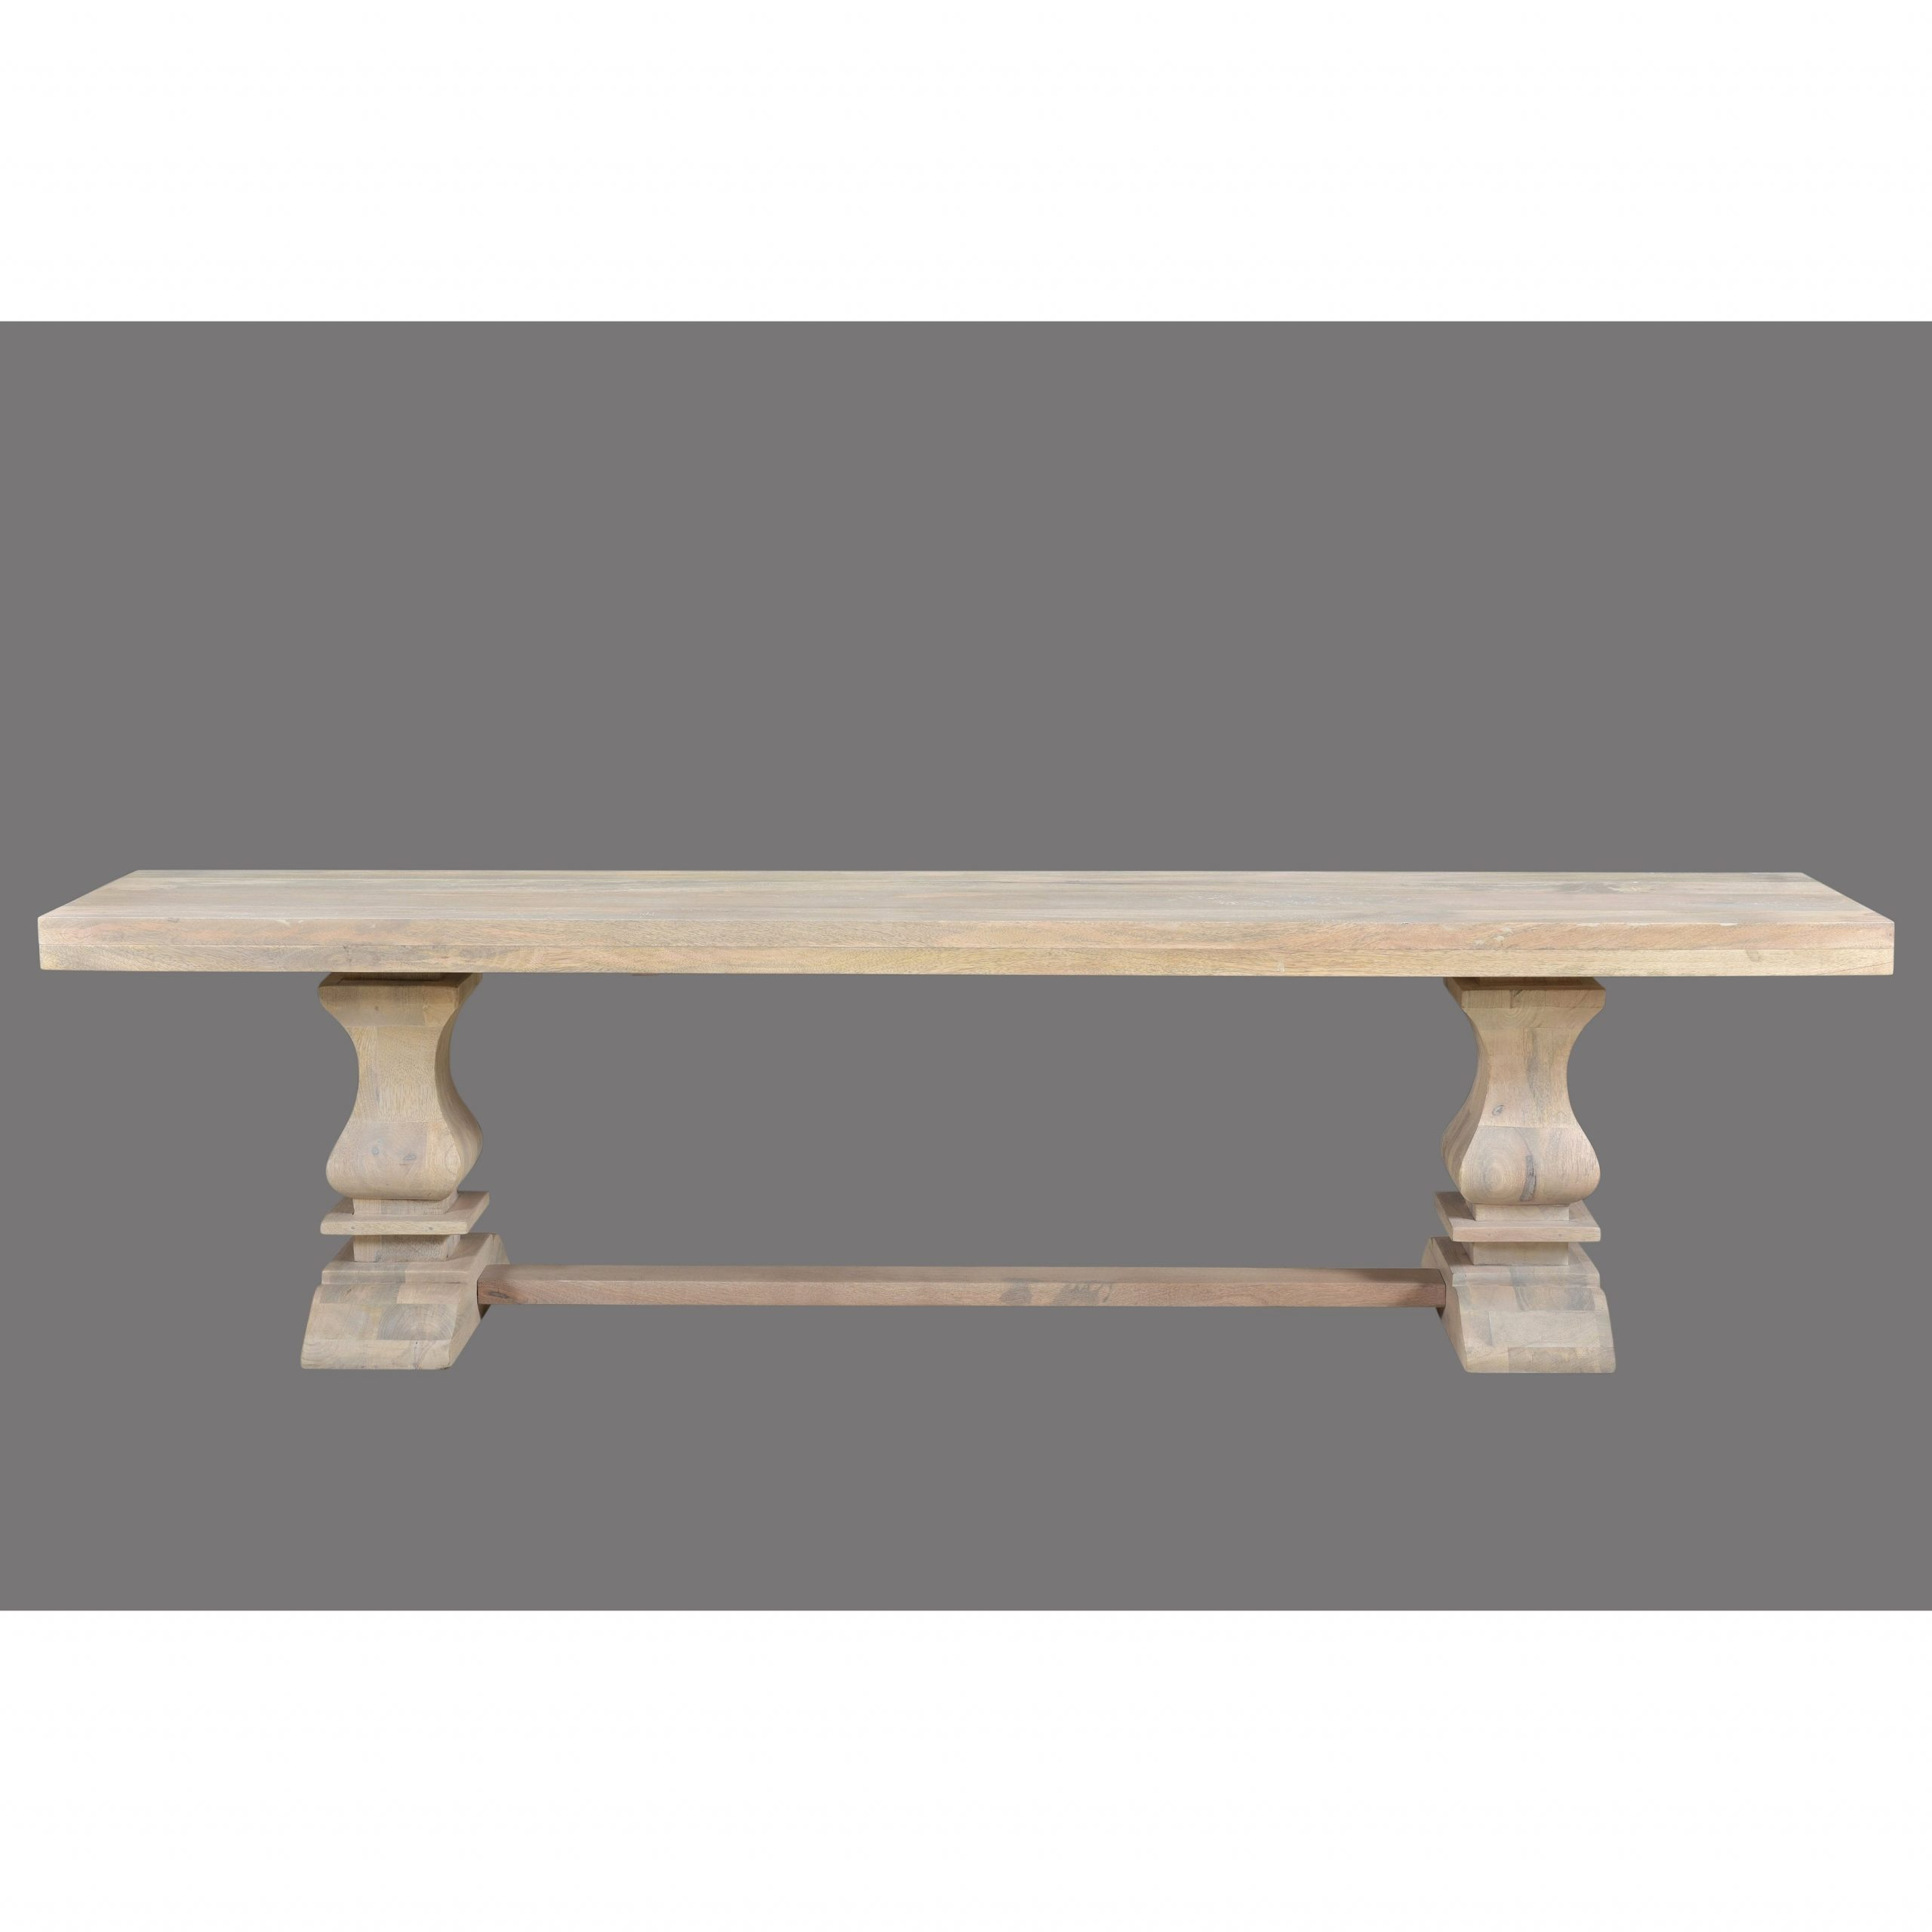 Maliyah Pedestal Wood Bench – 18'' H X 72'' W X 15'' D Pertaining To Maliyah Wooden Garden Benches (View 10 of 25)